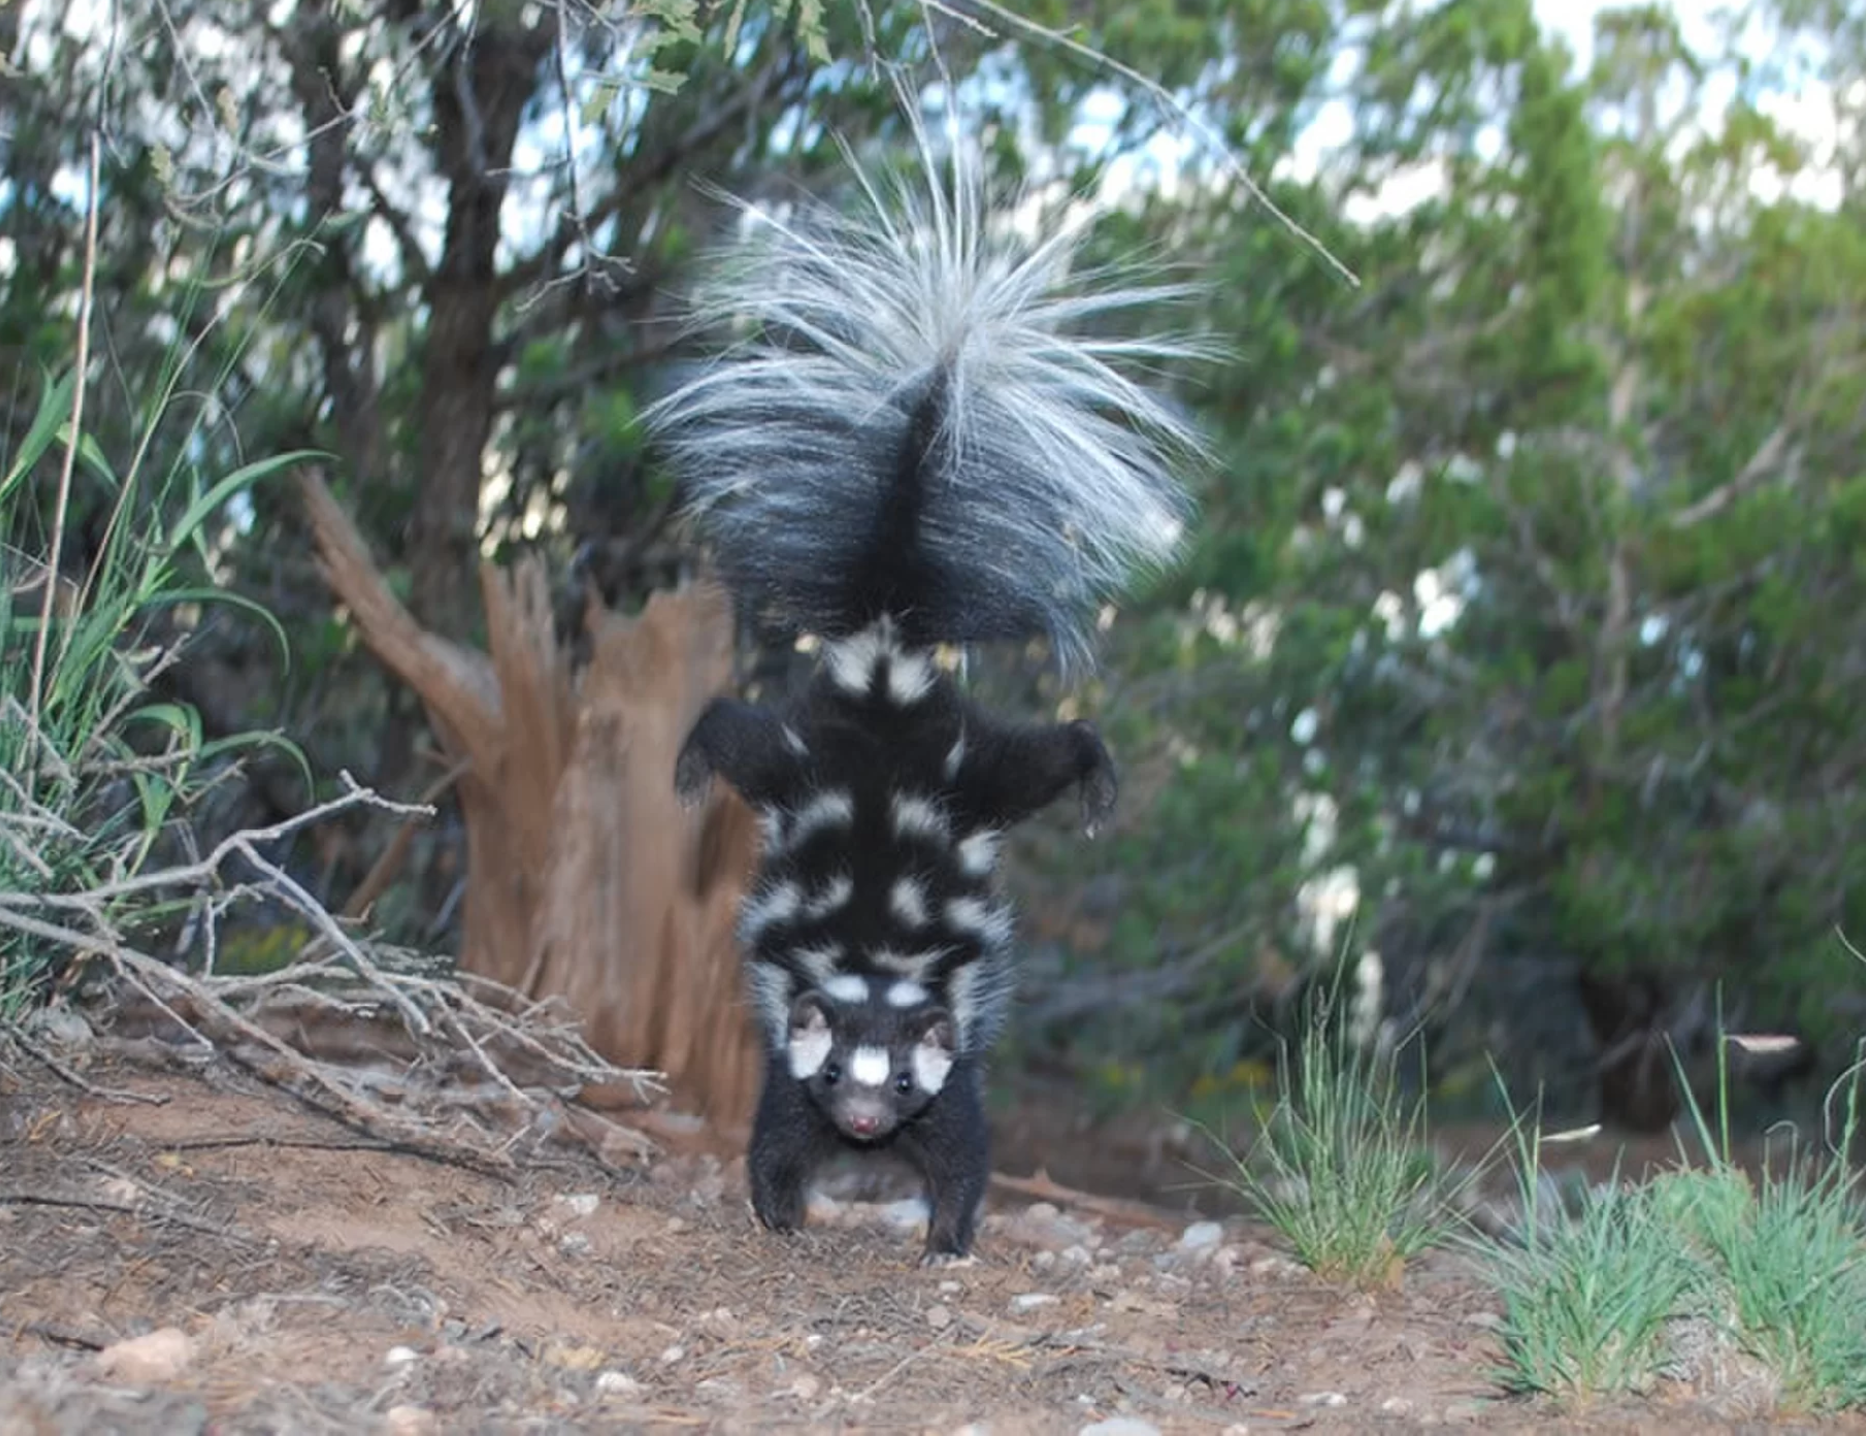 handstanding skunks u0027 dna holds clues to ancient climate cbs news